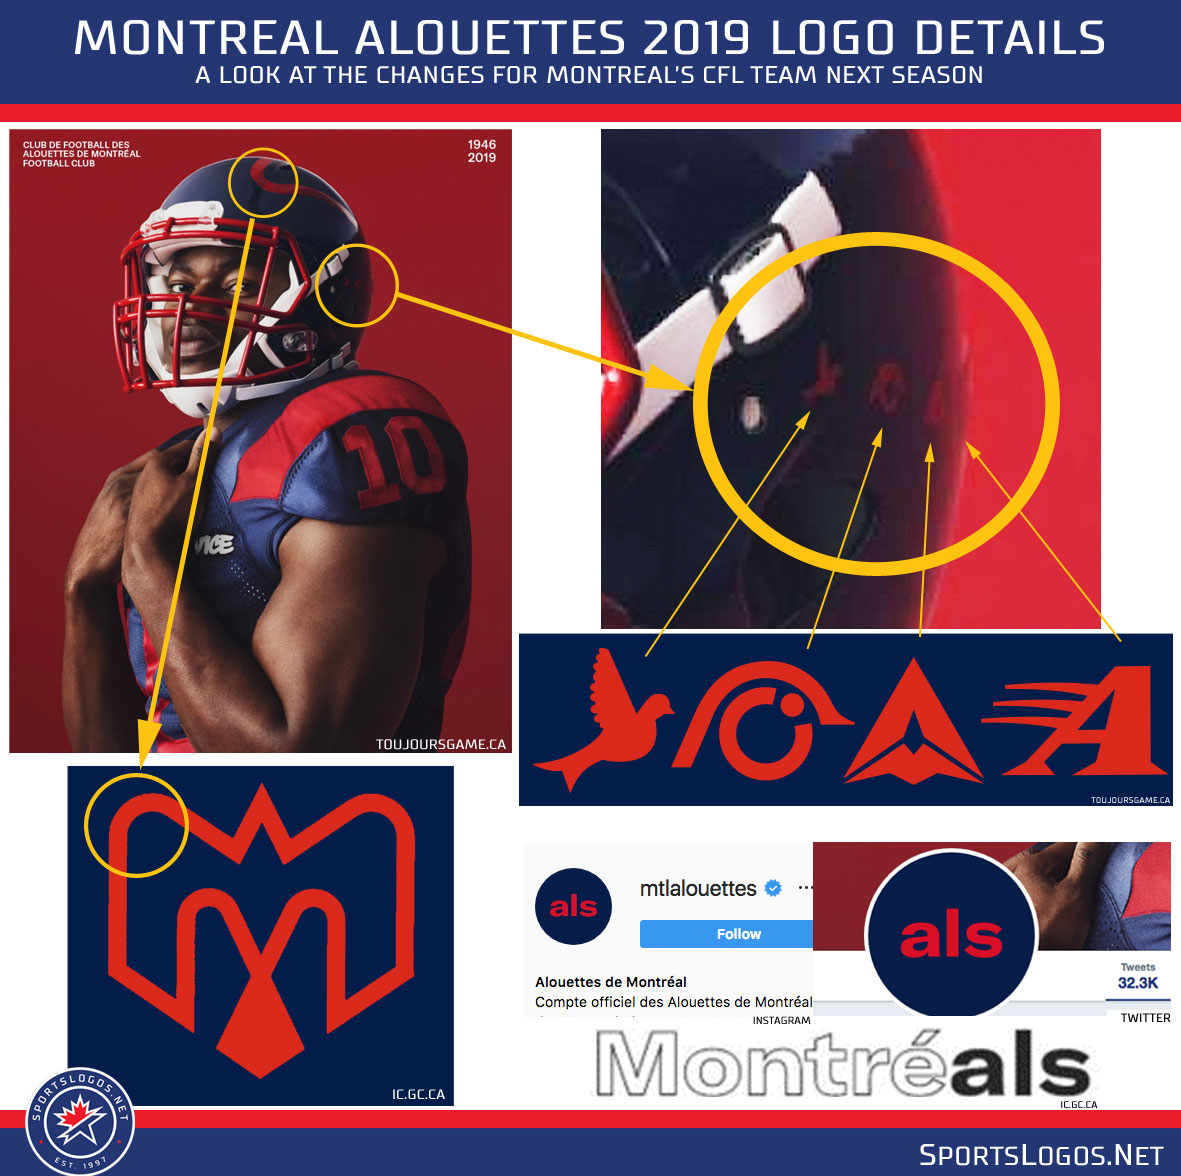 An Early Look at the New Montreal Alouettes Logos for 2019 | Chris